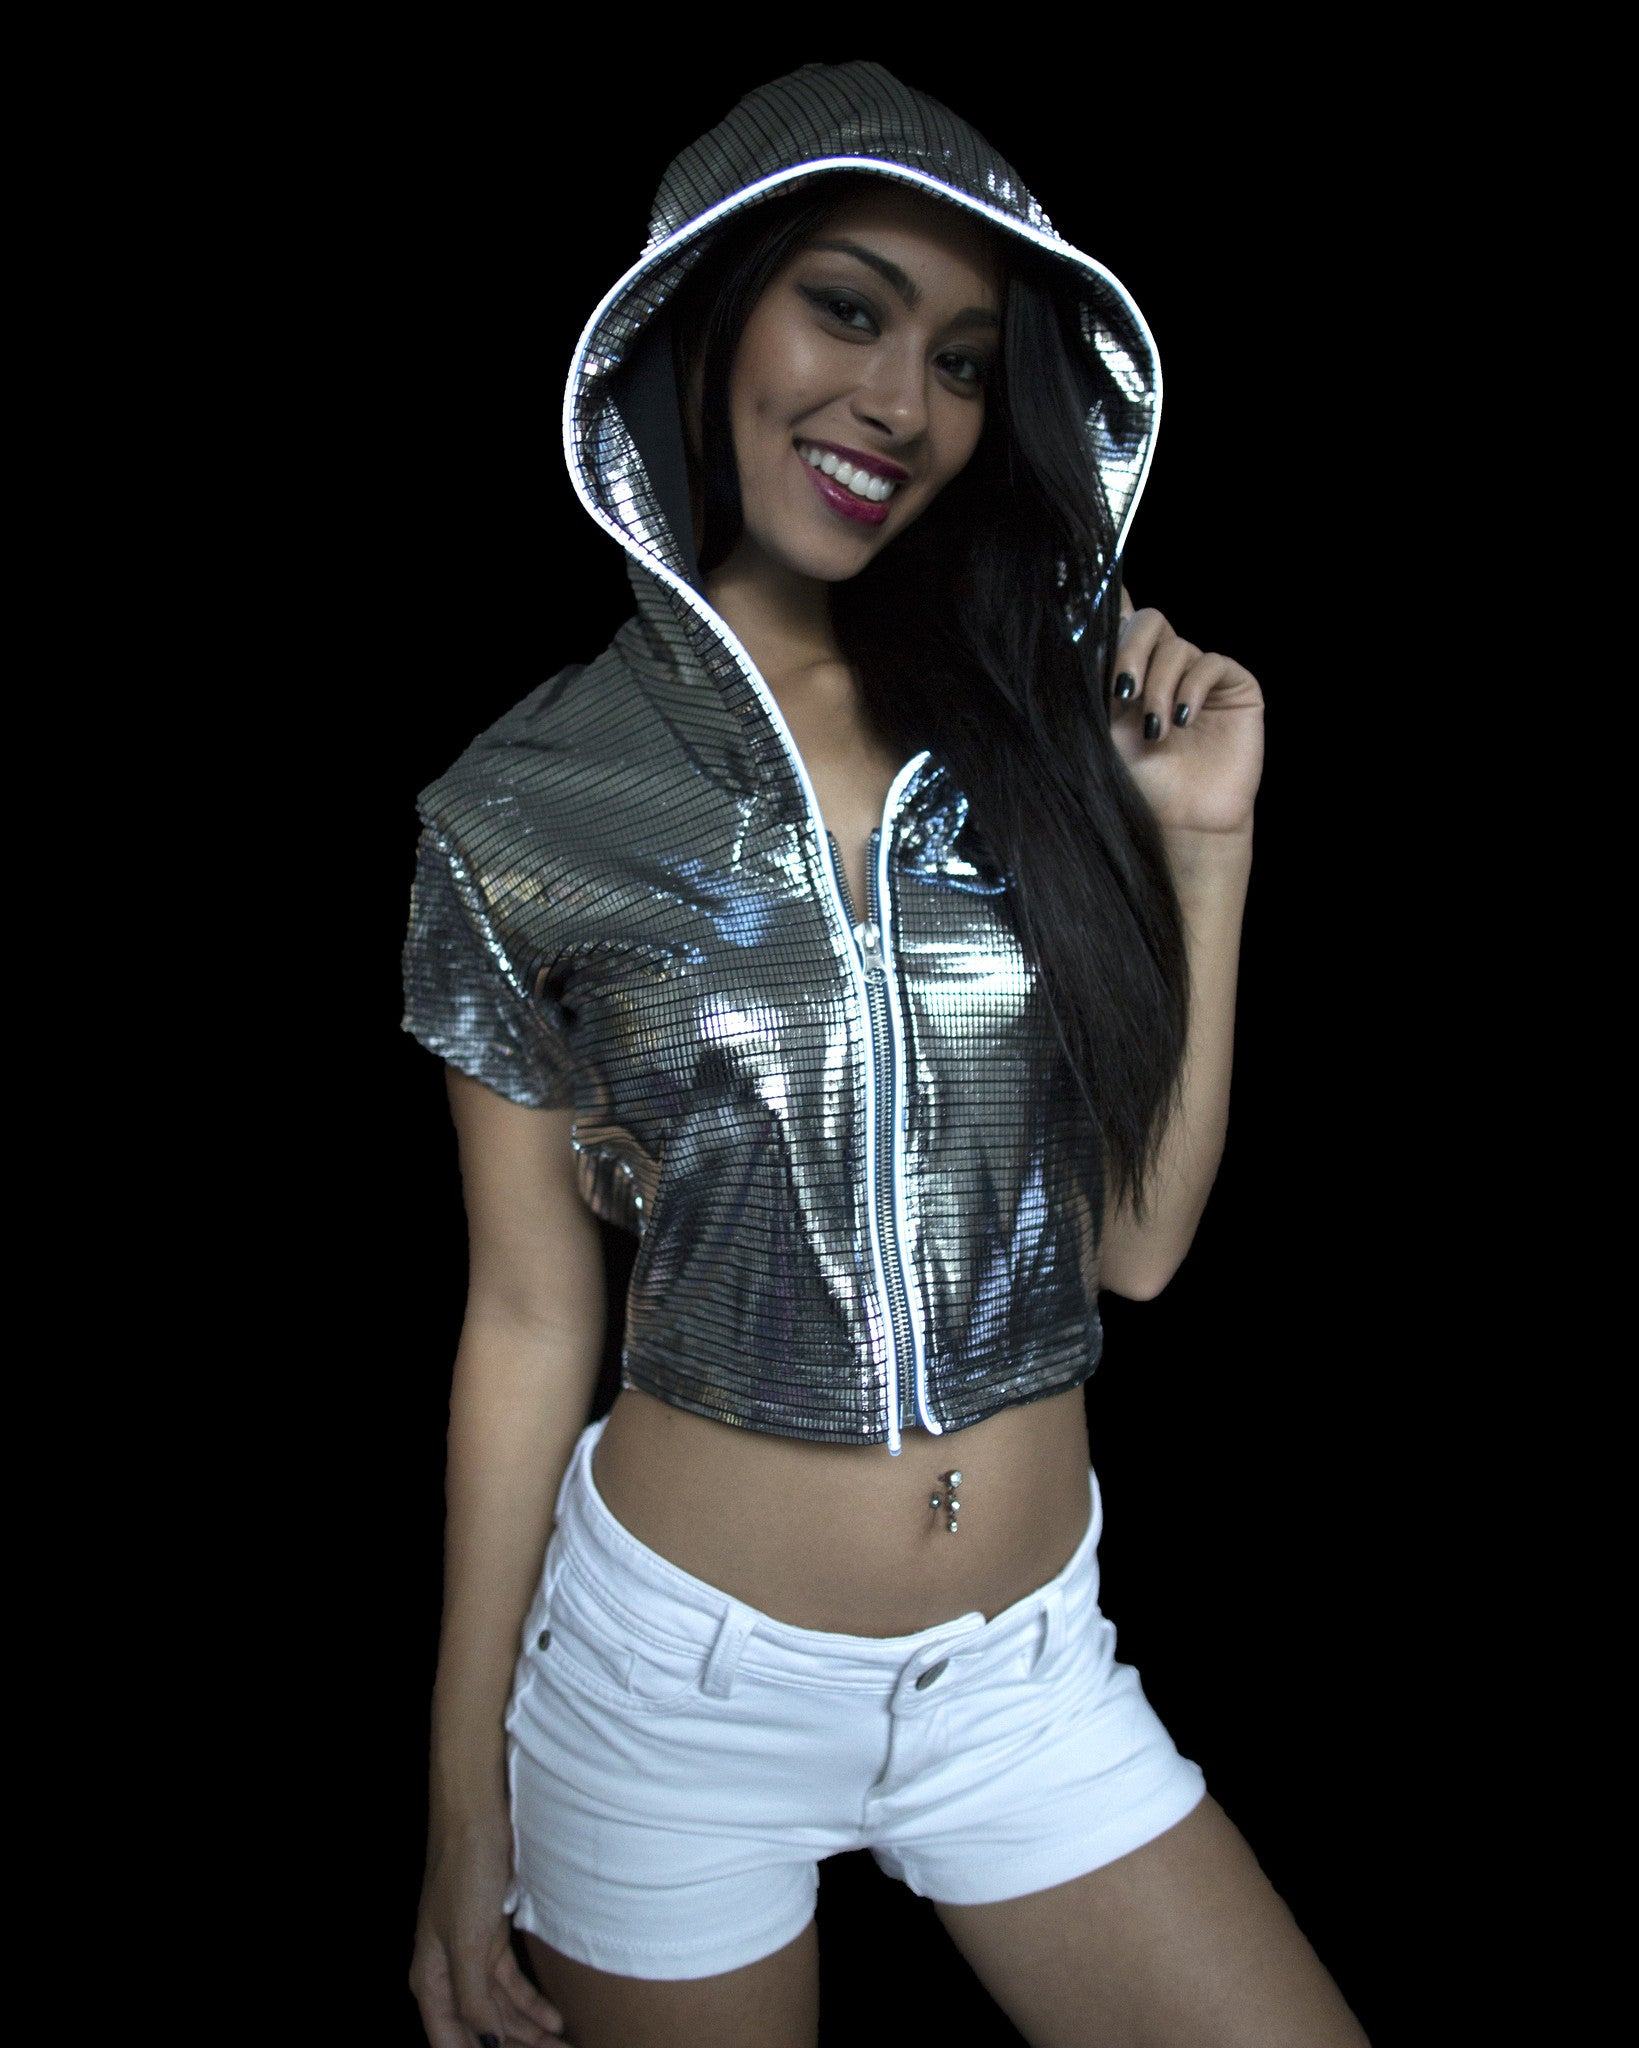 Light Up Crop Top - Electro - Electric Styles | World's Number 1 Light Up Shoe Store - {product_type}} - Silver / Large - 3